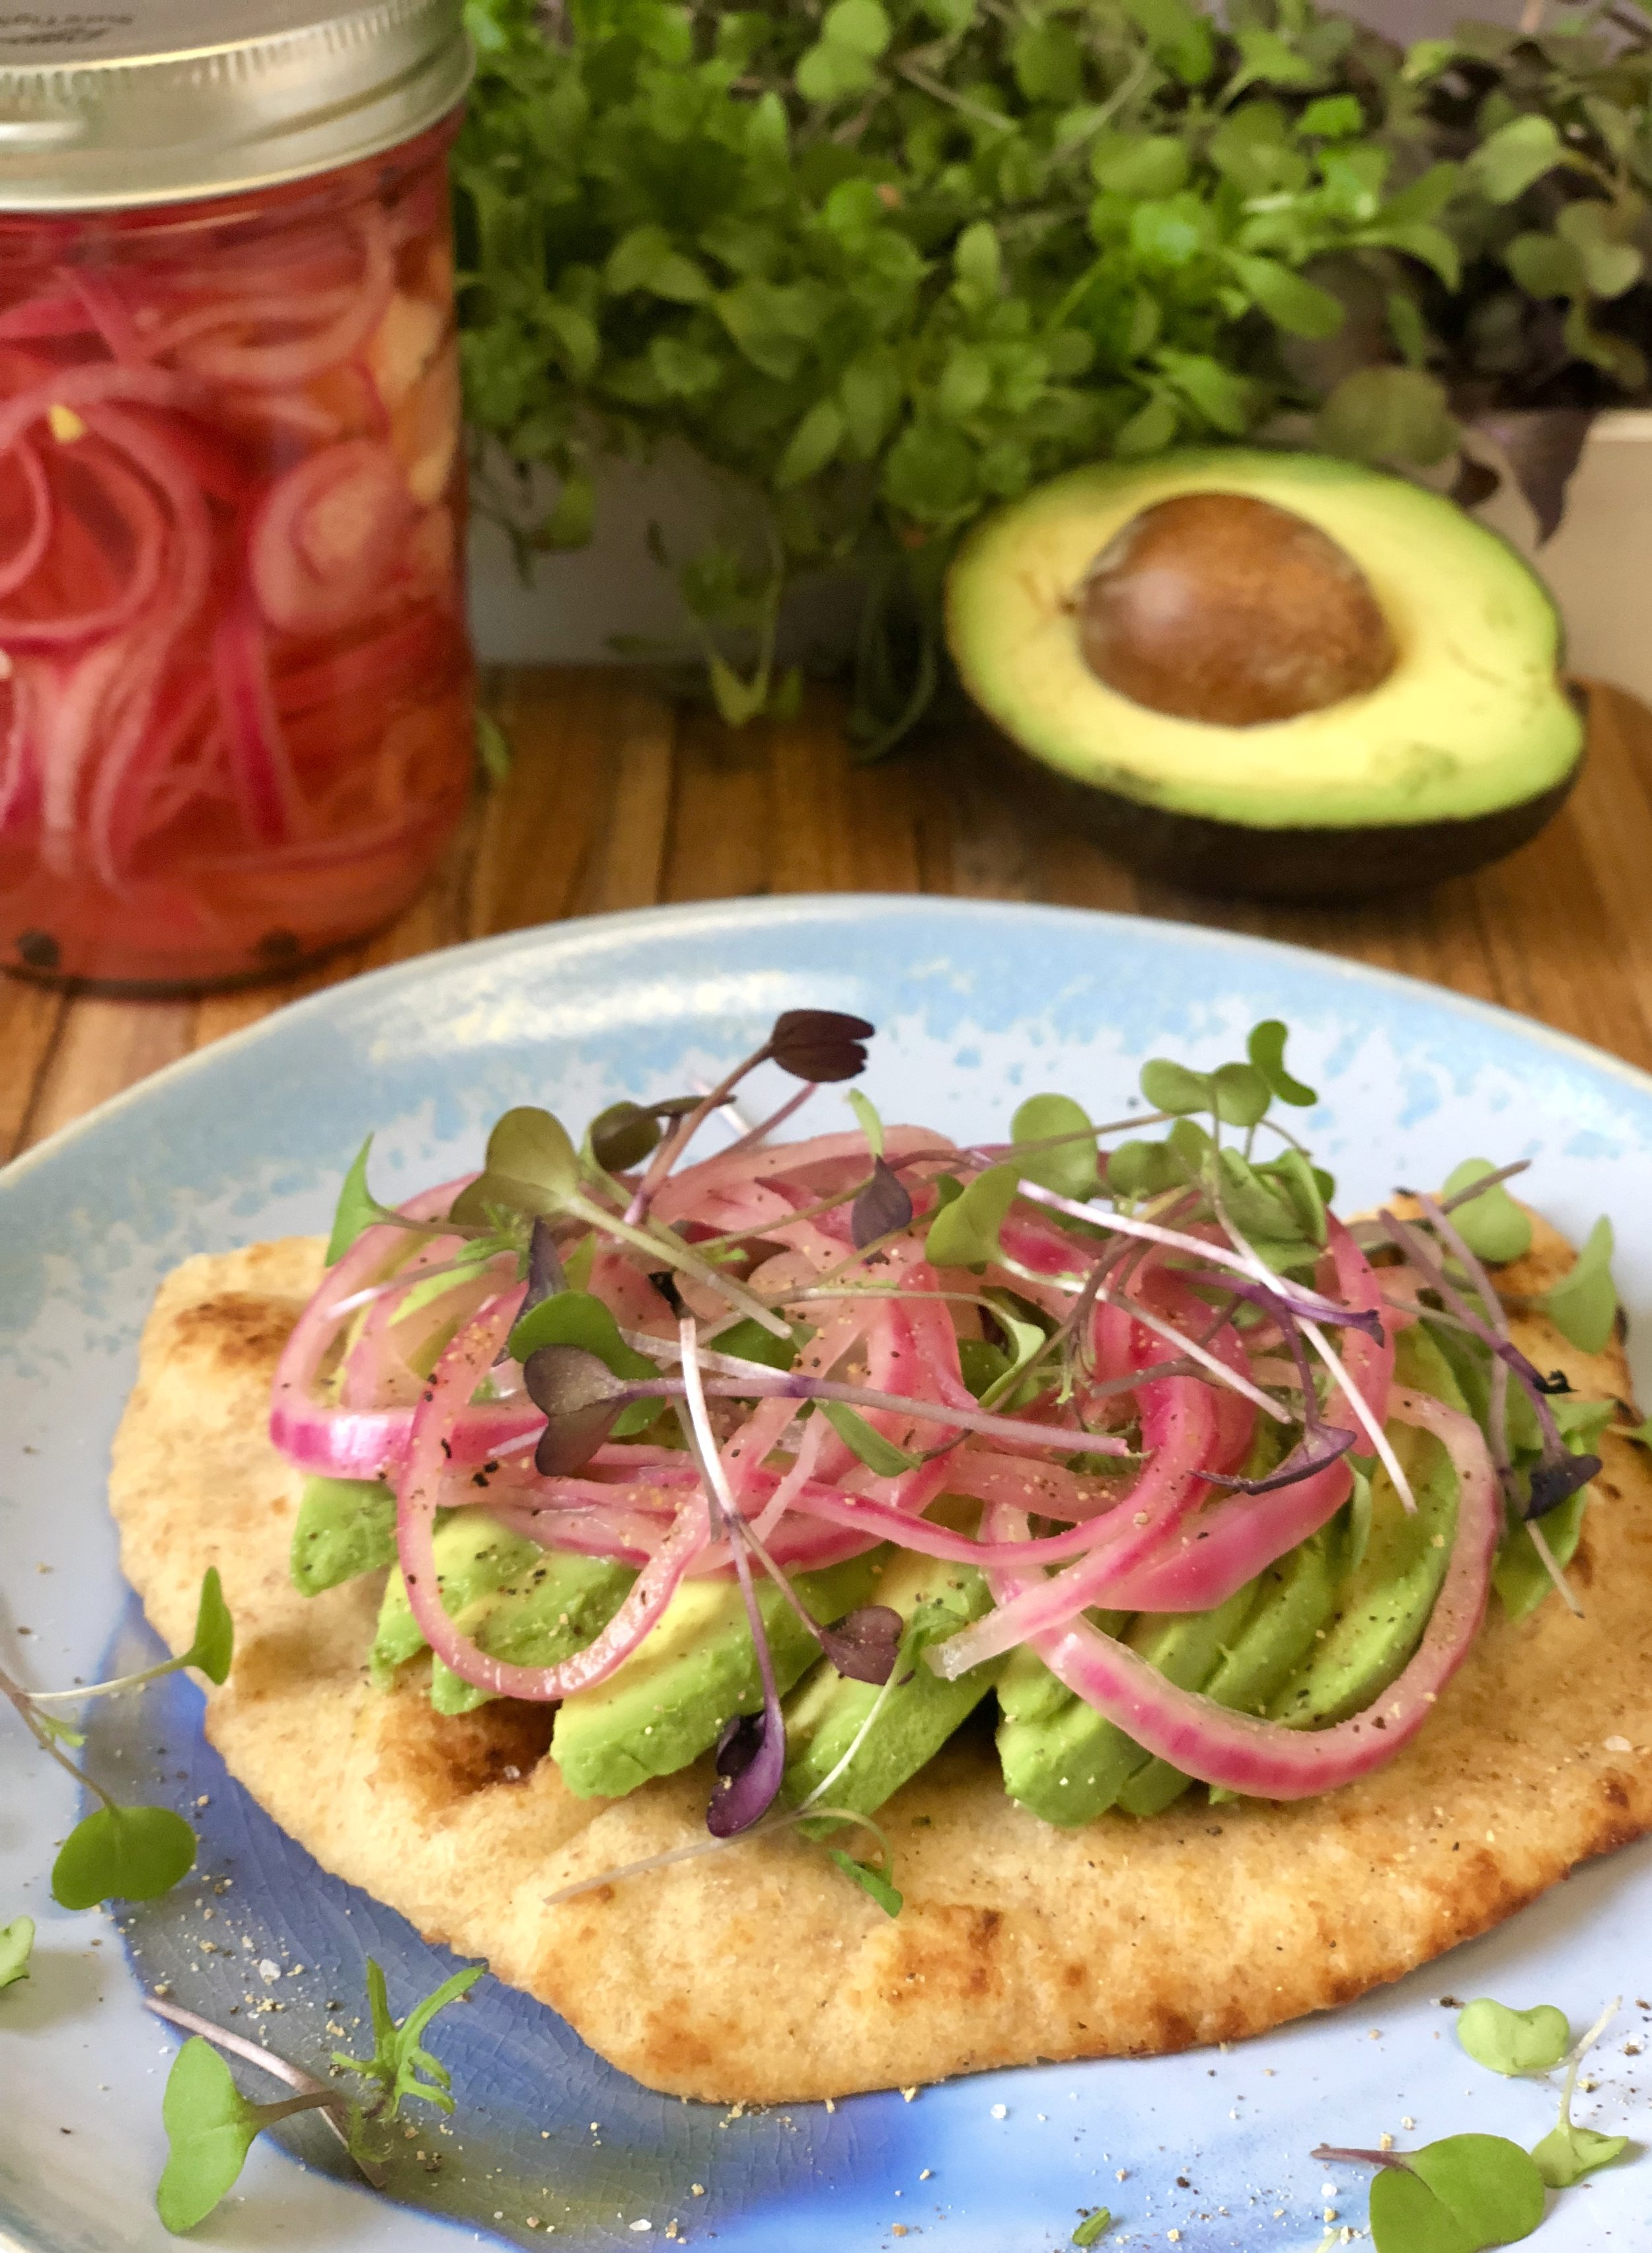 Current obsession: warm naan with avocado, pickled red onion and micro greens